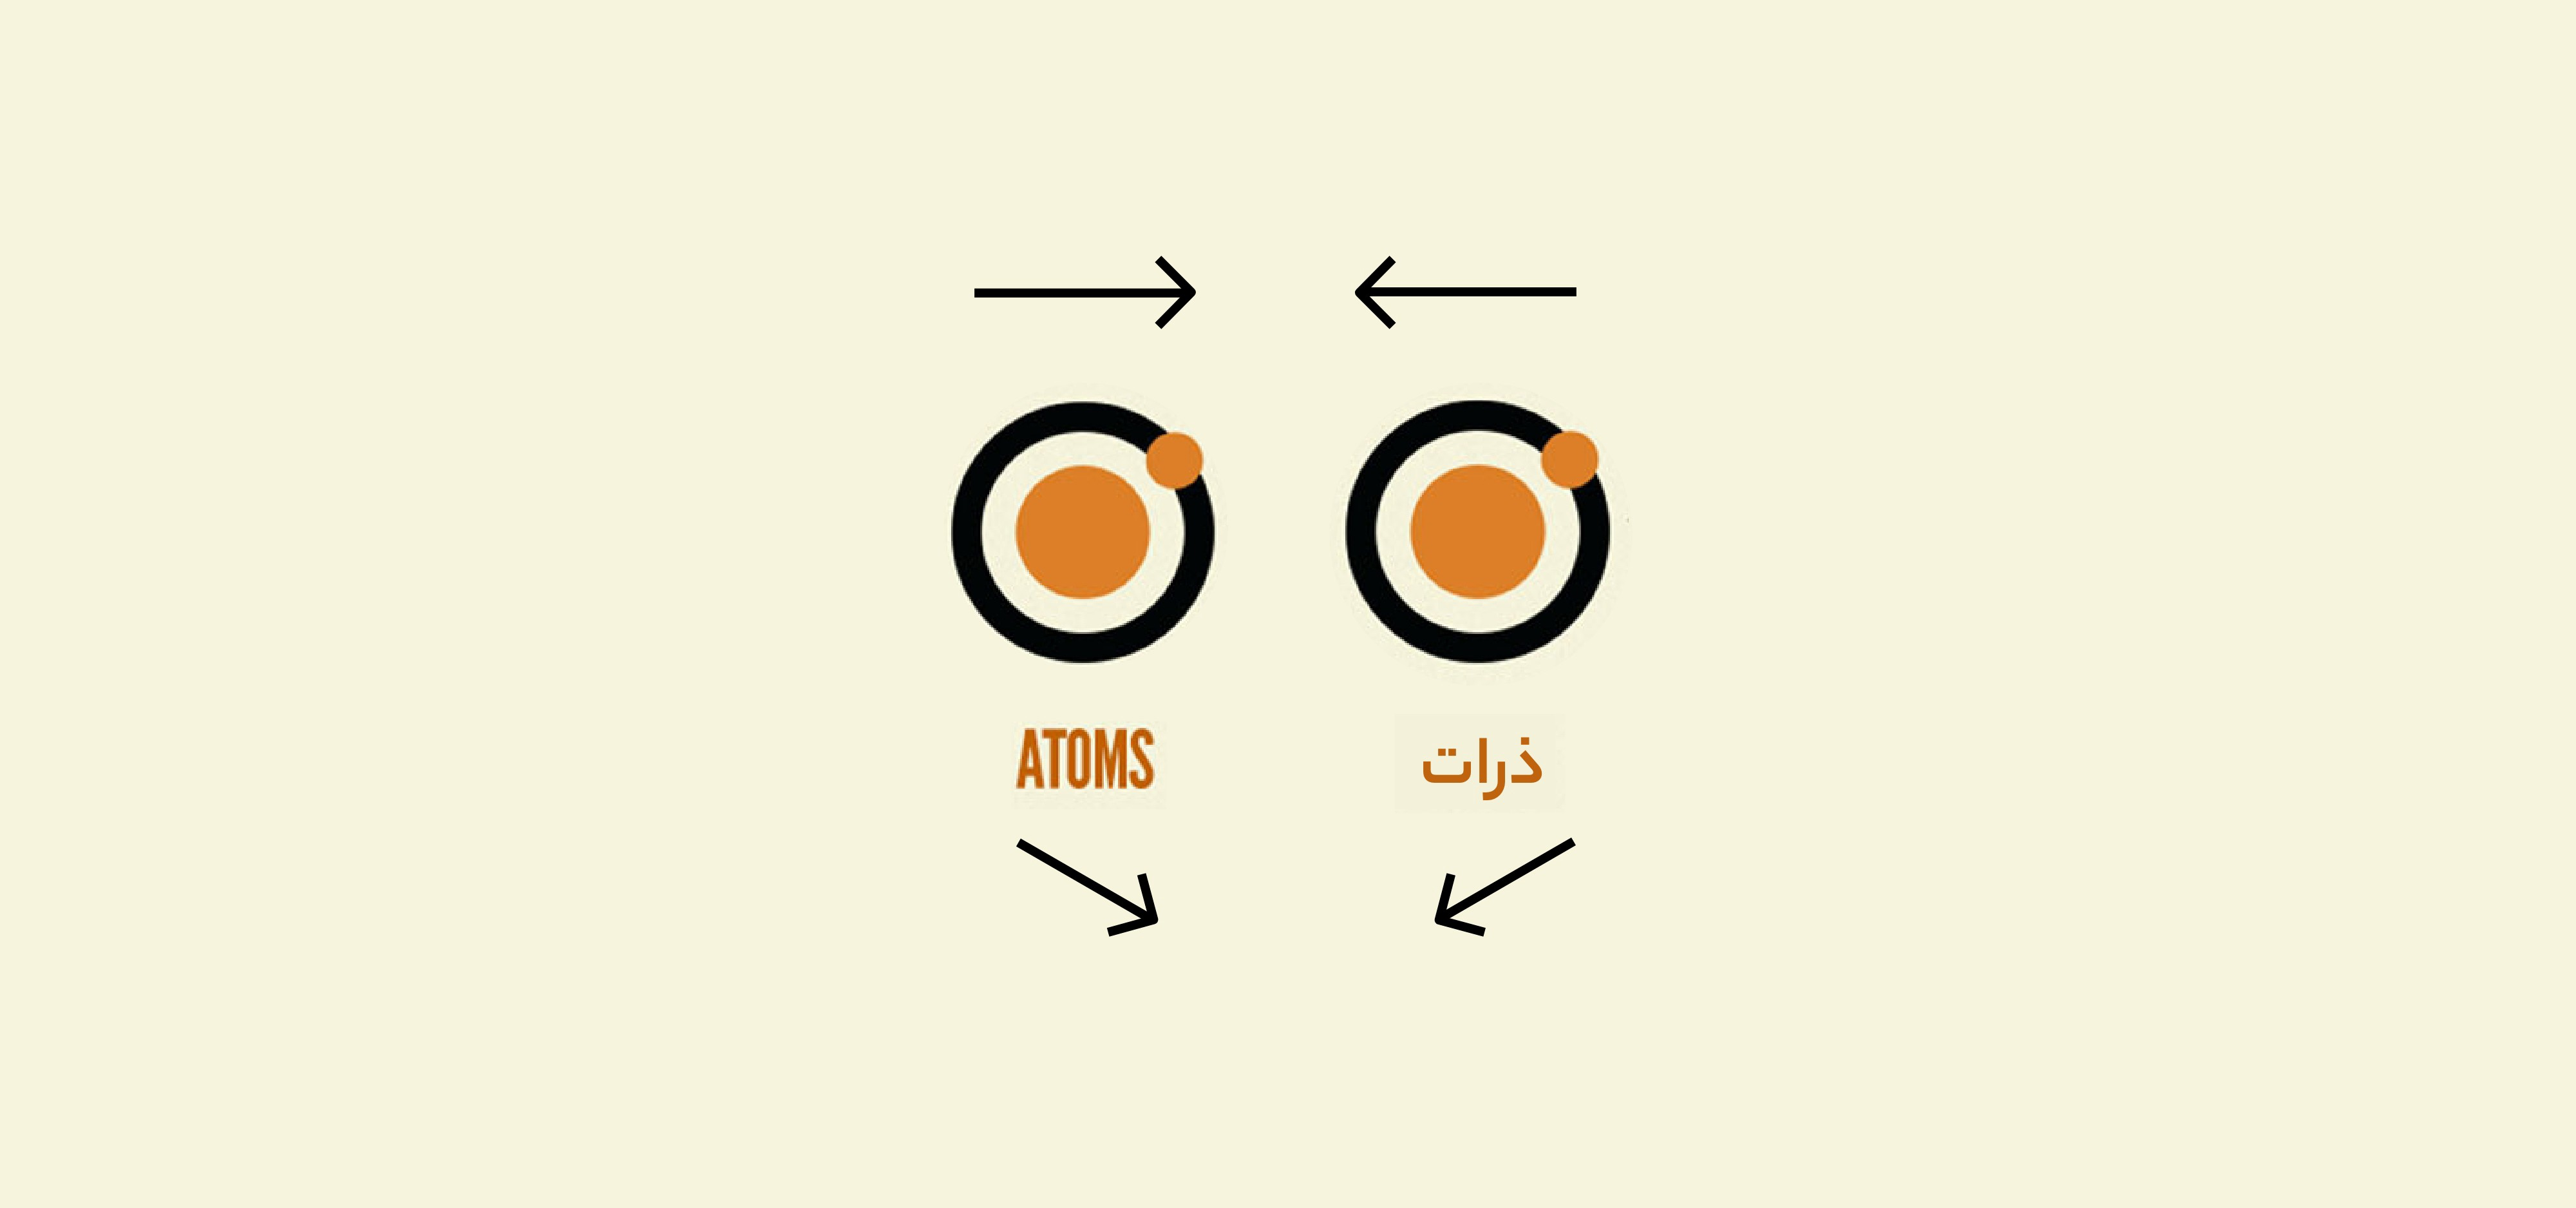 Description: An atom  mirrored from Atomic design methodology; with two mirrored arrows: one arrow from left to right mirrored right to left, another arrow from up-left to right-down mirrored up-right to left-down. Two texts under each atom: one 'ATOMS' written in English, another 'ذرات' written in Arabic (means 'atoms')